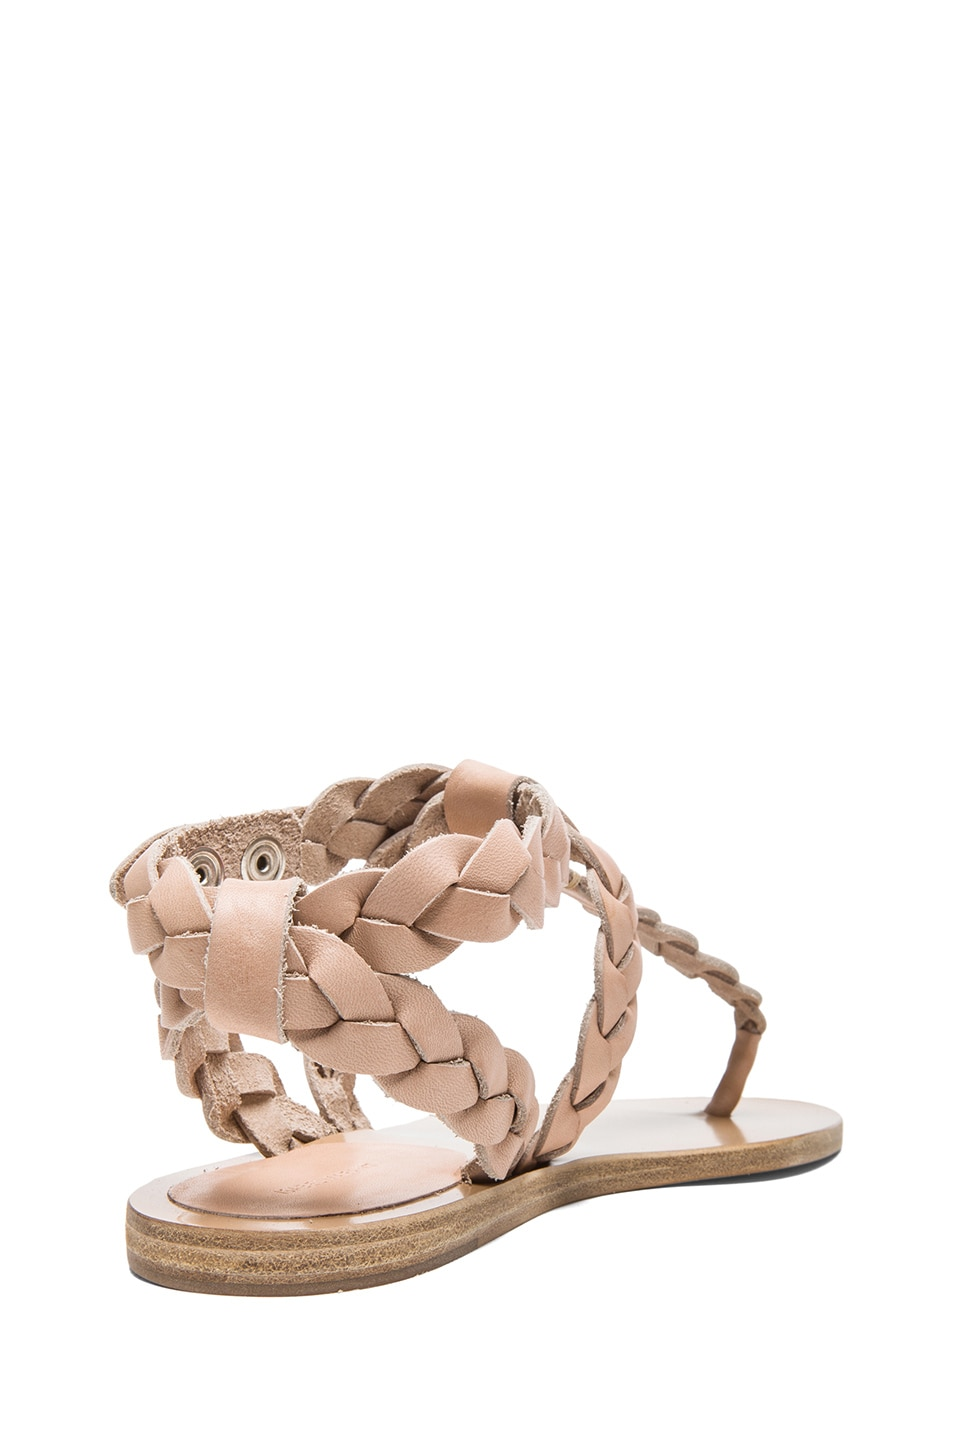 Isabel Marant Braided Leather Sandals sale choice sale 2014 where can you find K2eTwAJh7